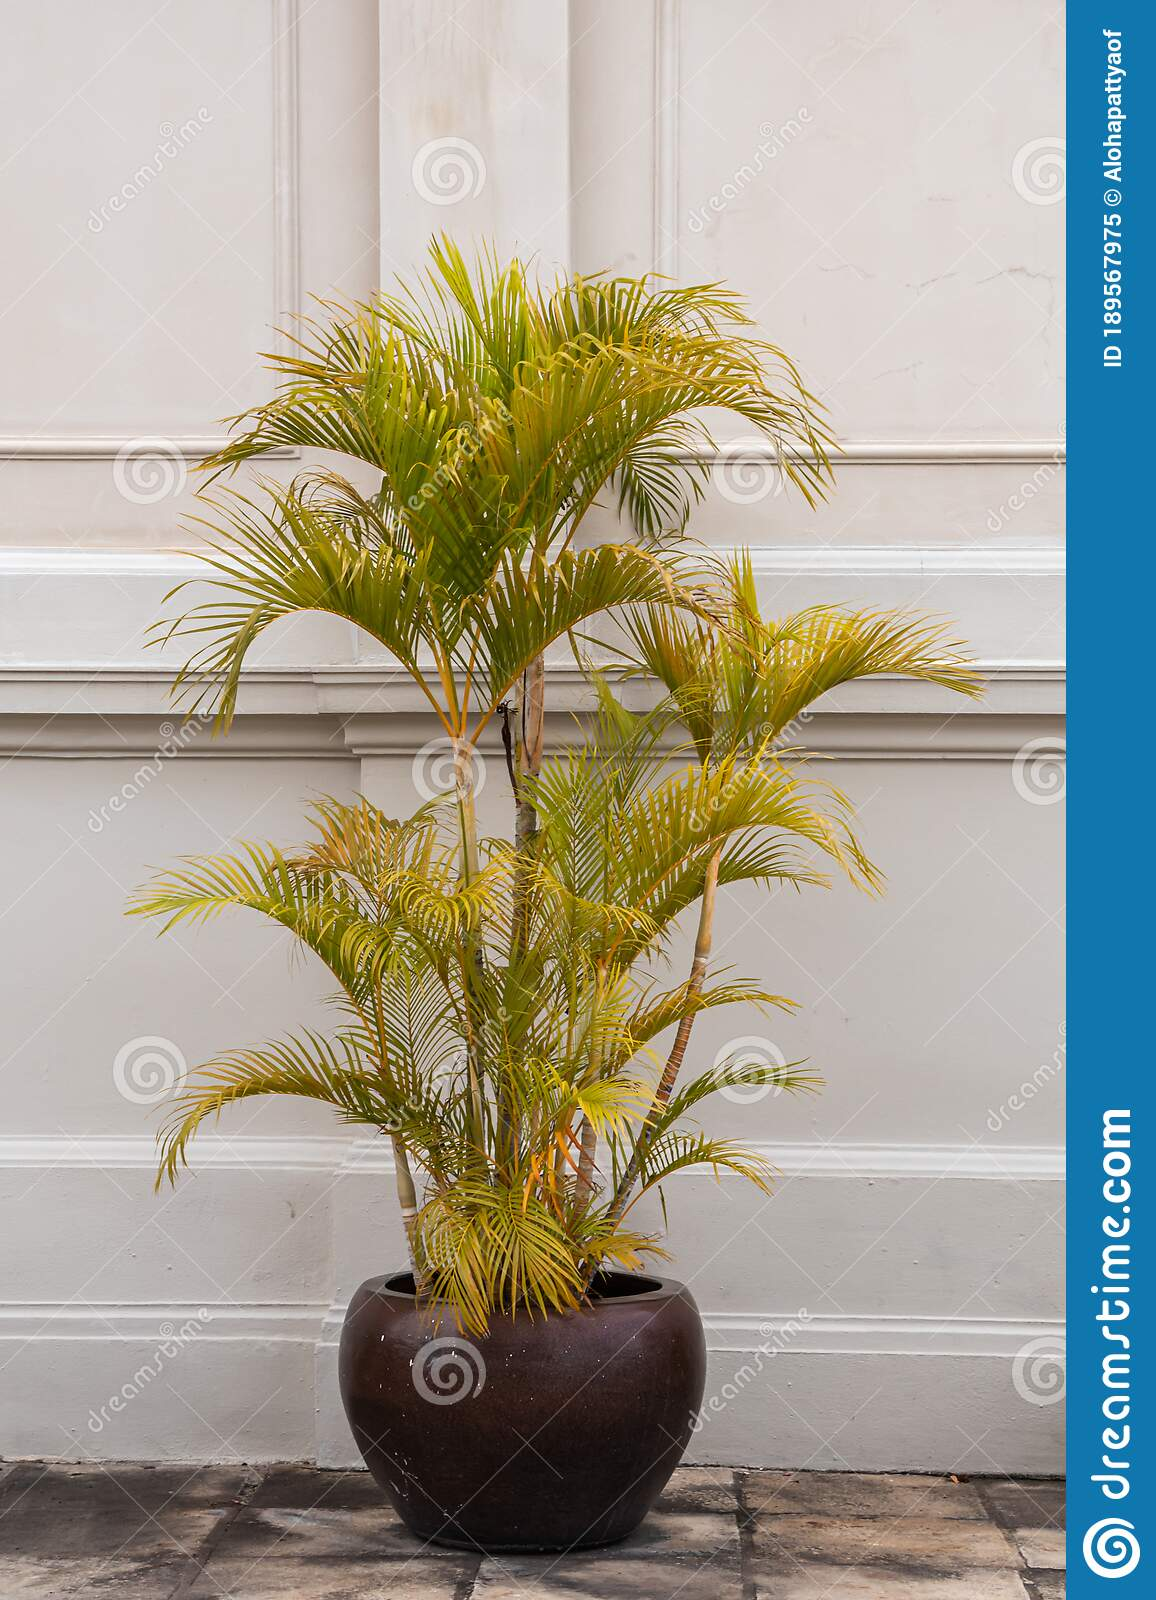 Dypsis Lutescens Plant In A Pot Common Name Golden Cane Palm Areca Palm Yellow Palm Or Butterfly Palm Stock Image Image Of Leaf Growth 189567975